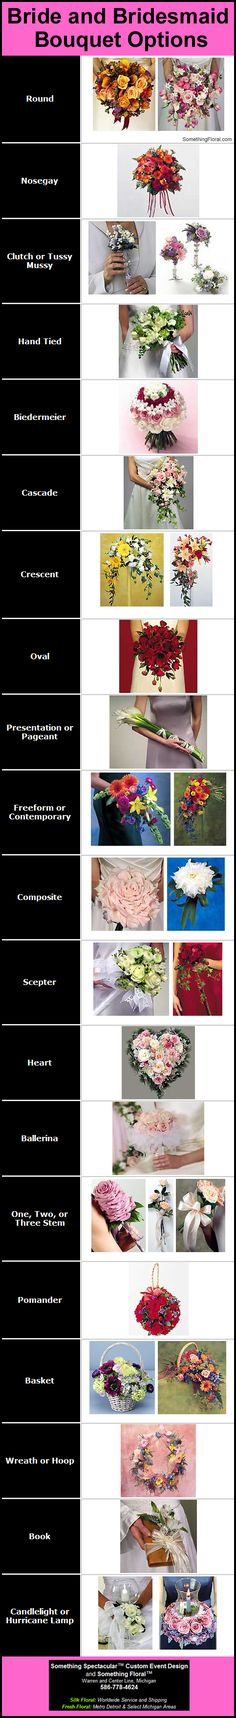 A pictorial list of bridal bouquet and bridesmaid bouquet shapes and options.